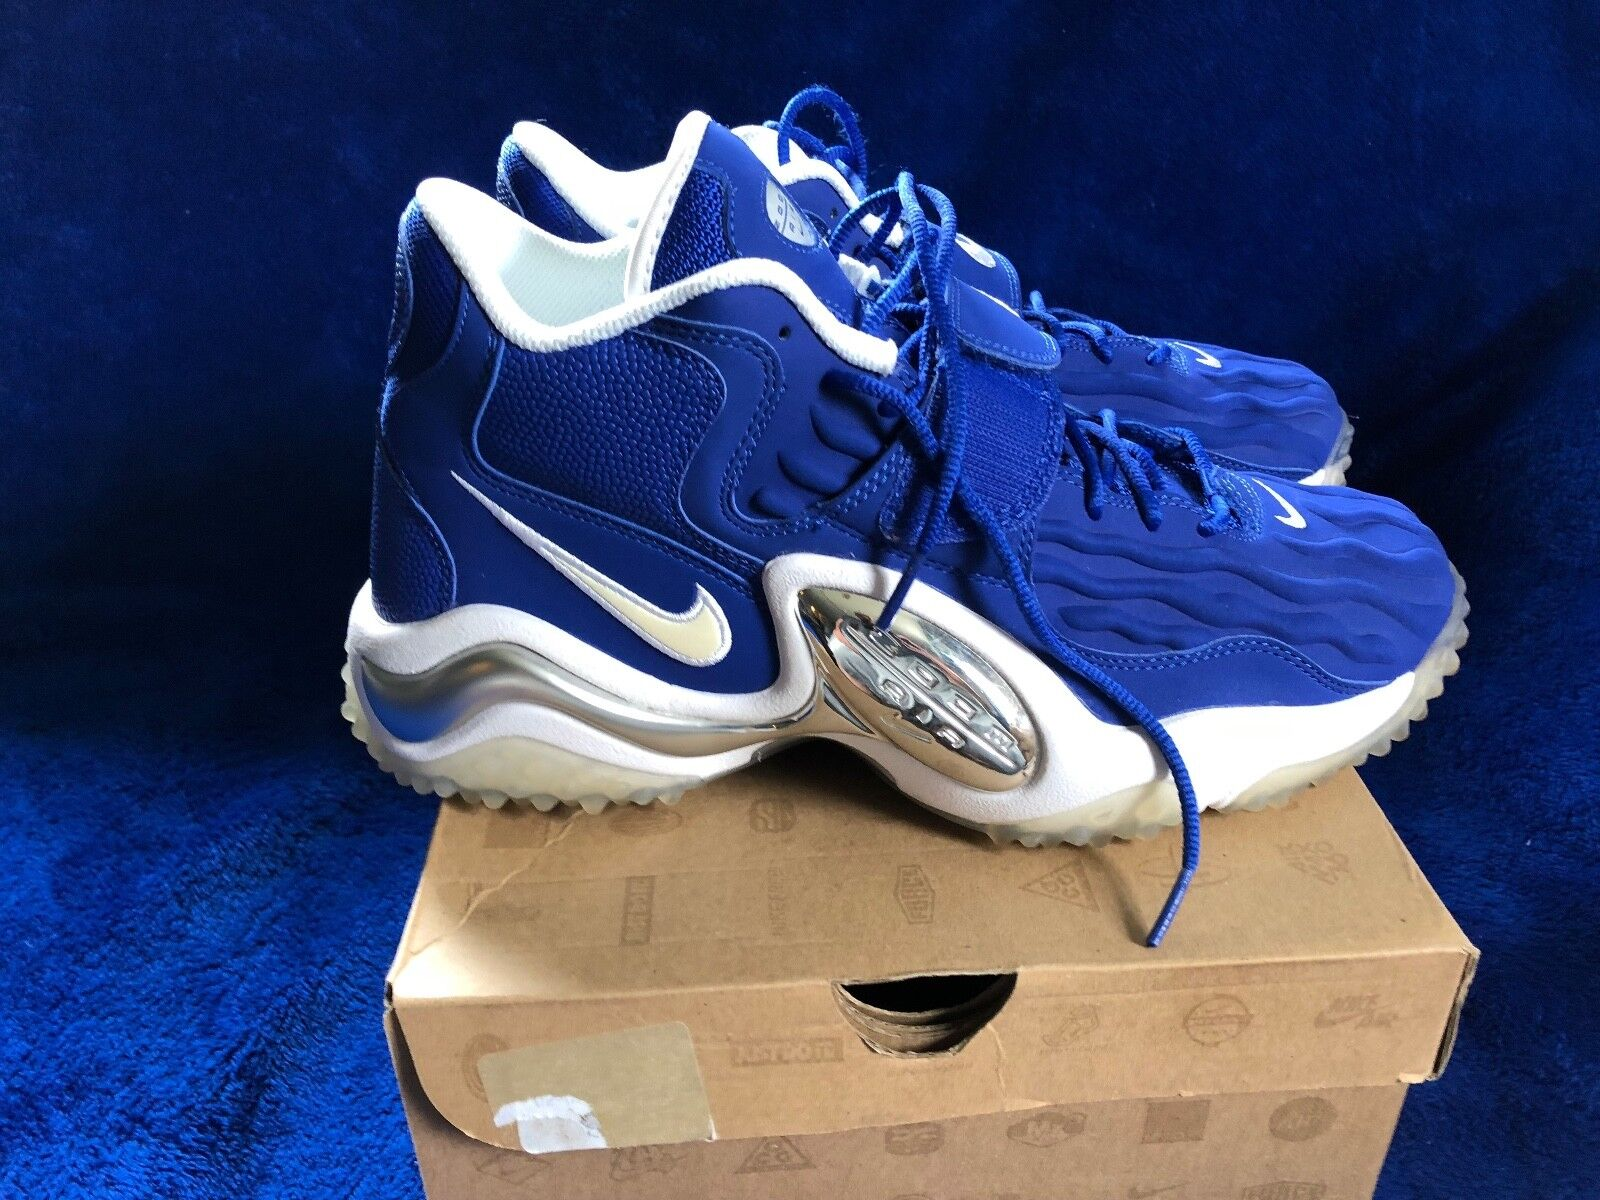 Nike Air Zoom Turf Jet 97 Mens Size 10 DS New with Box